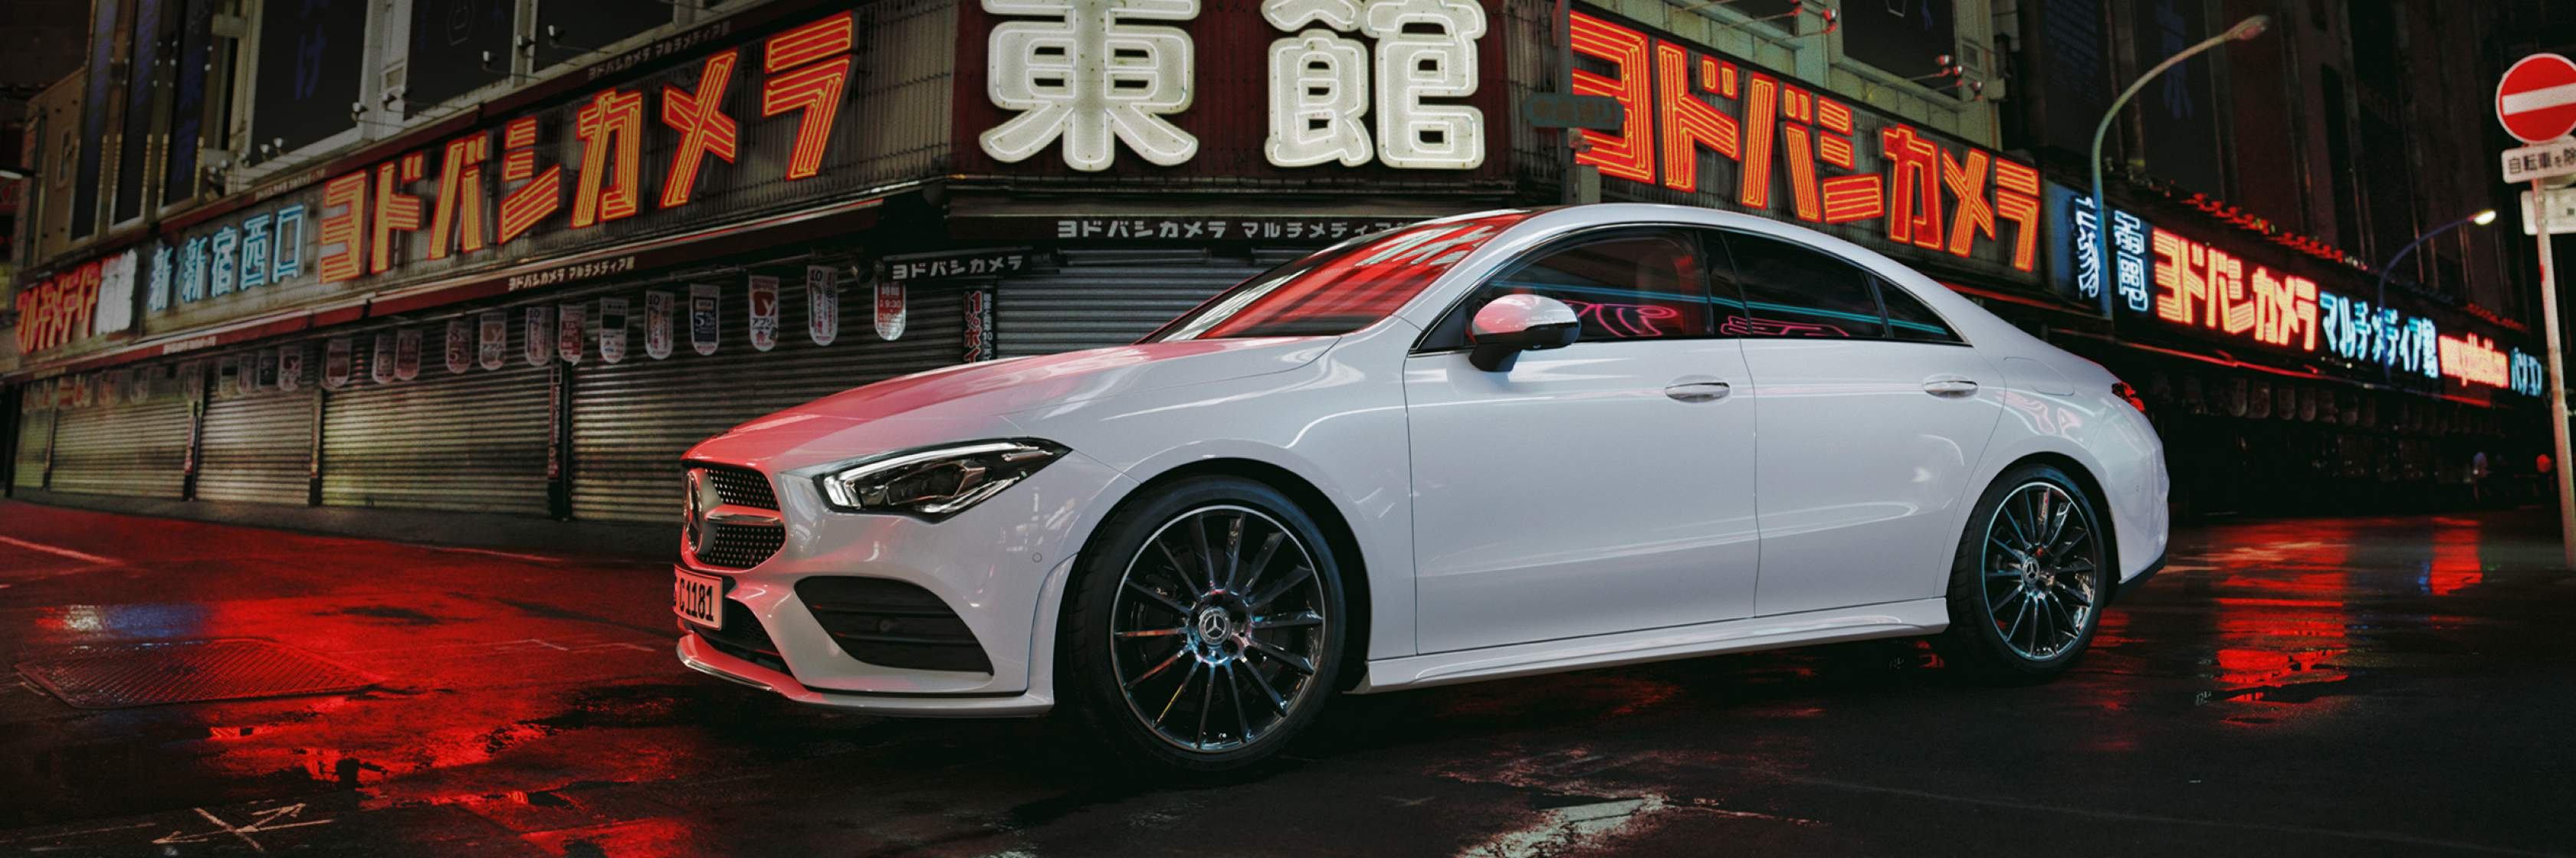 Огляд Mercedes-Benz CLA Coupe 2021